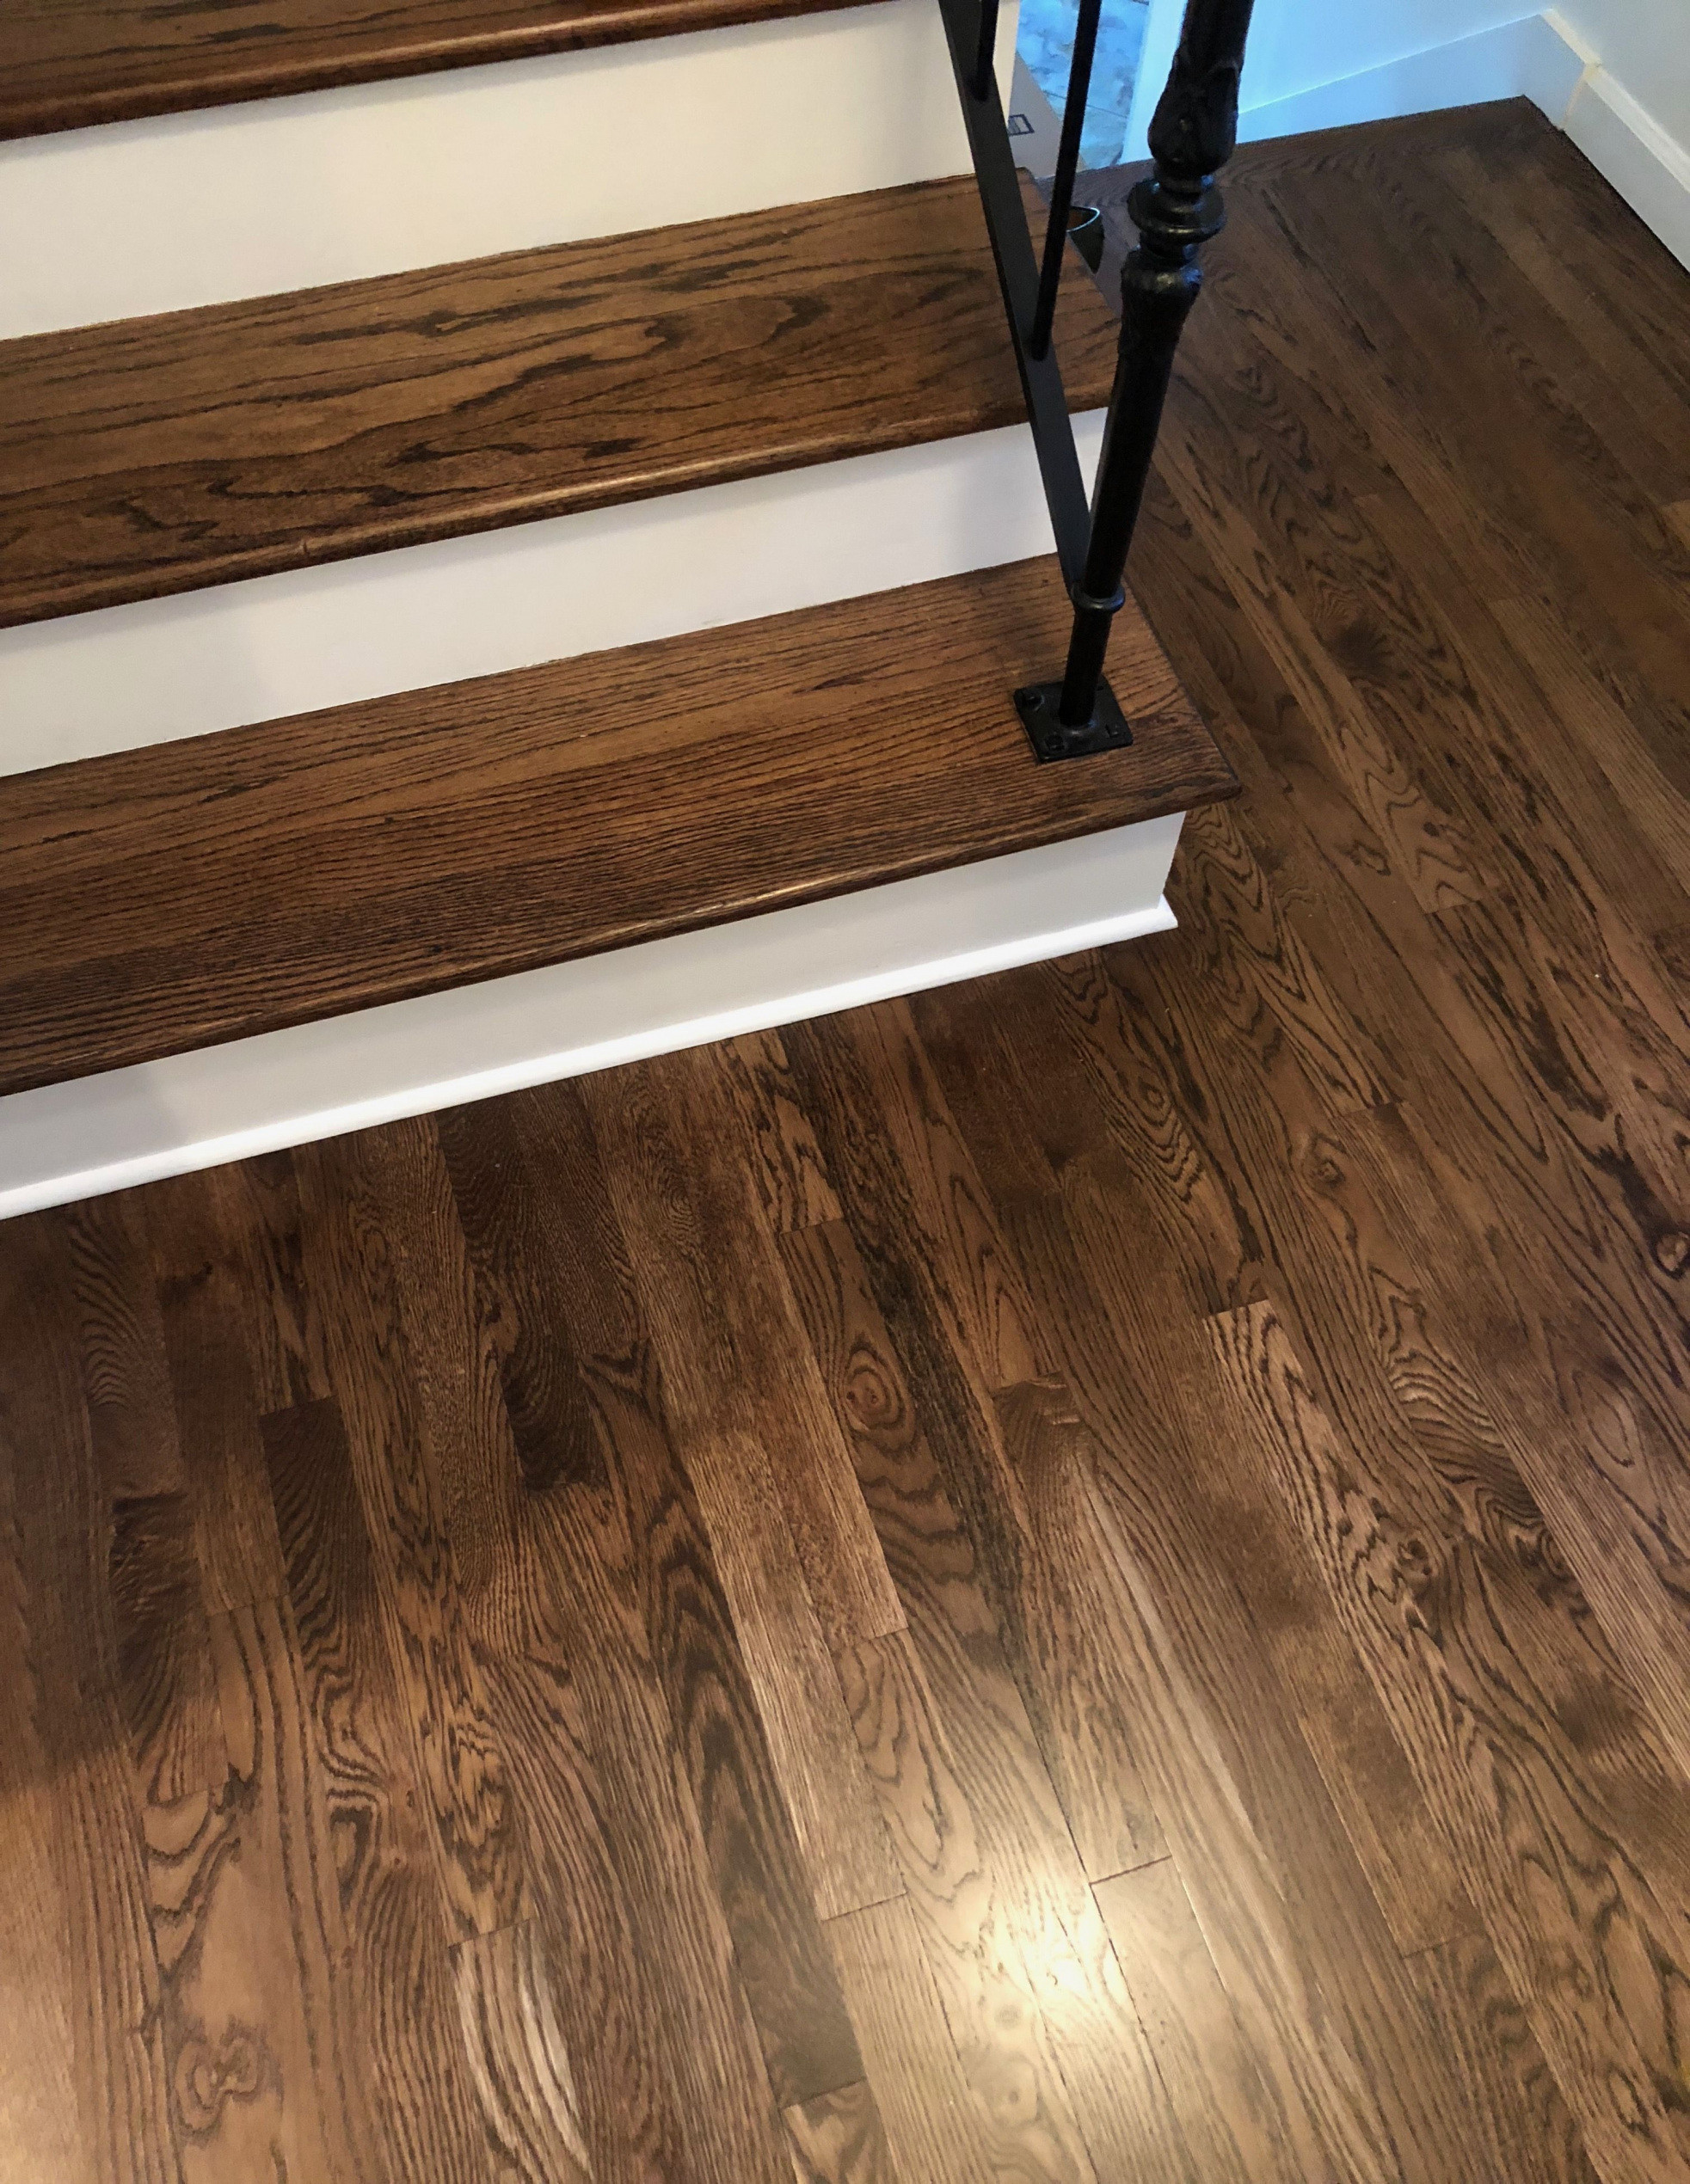 Different Types Of Hardwood Floor Finishes Of Wood Floor Finishes Vykup Hodinek Info Regarding Wood Floor Finishes Duraseal Dark Walnut with Satin Finish Floors are Select White Oak